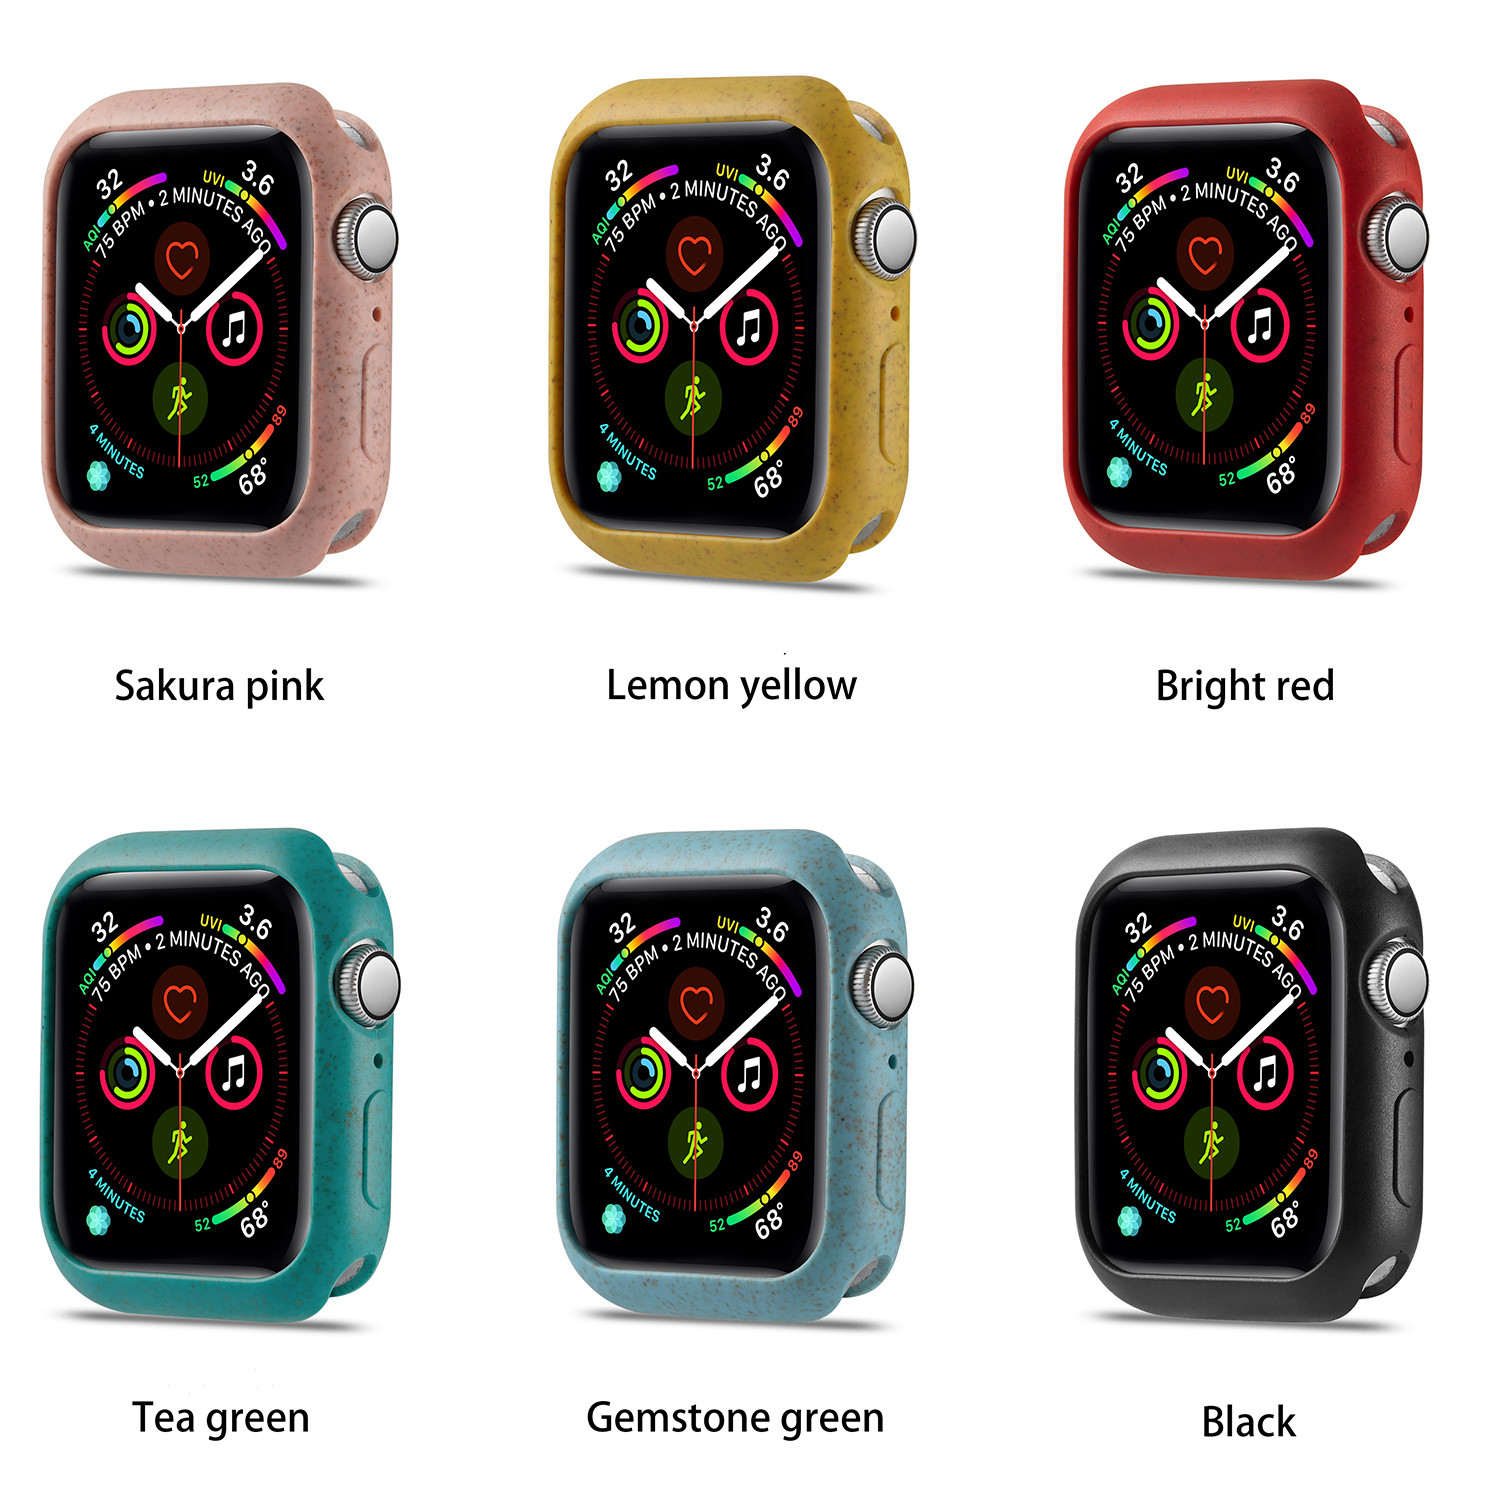 Protector Watch Cover Case For Apple Watch 4 5 3/2/1 40mm 44mm Macaroon Bumper Protector For IWatch Series 4 5 3 2 42mm 38mm